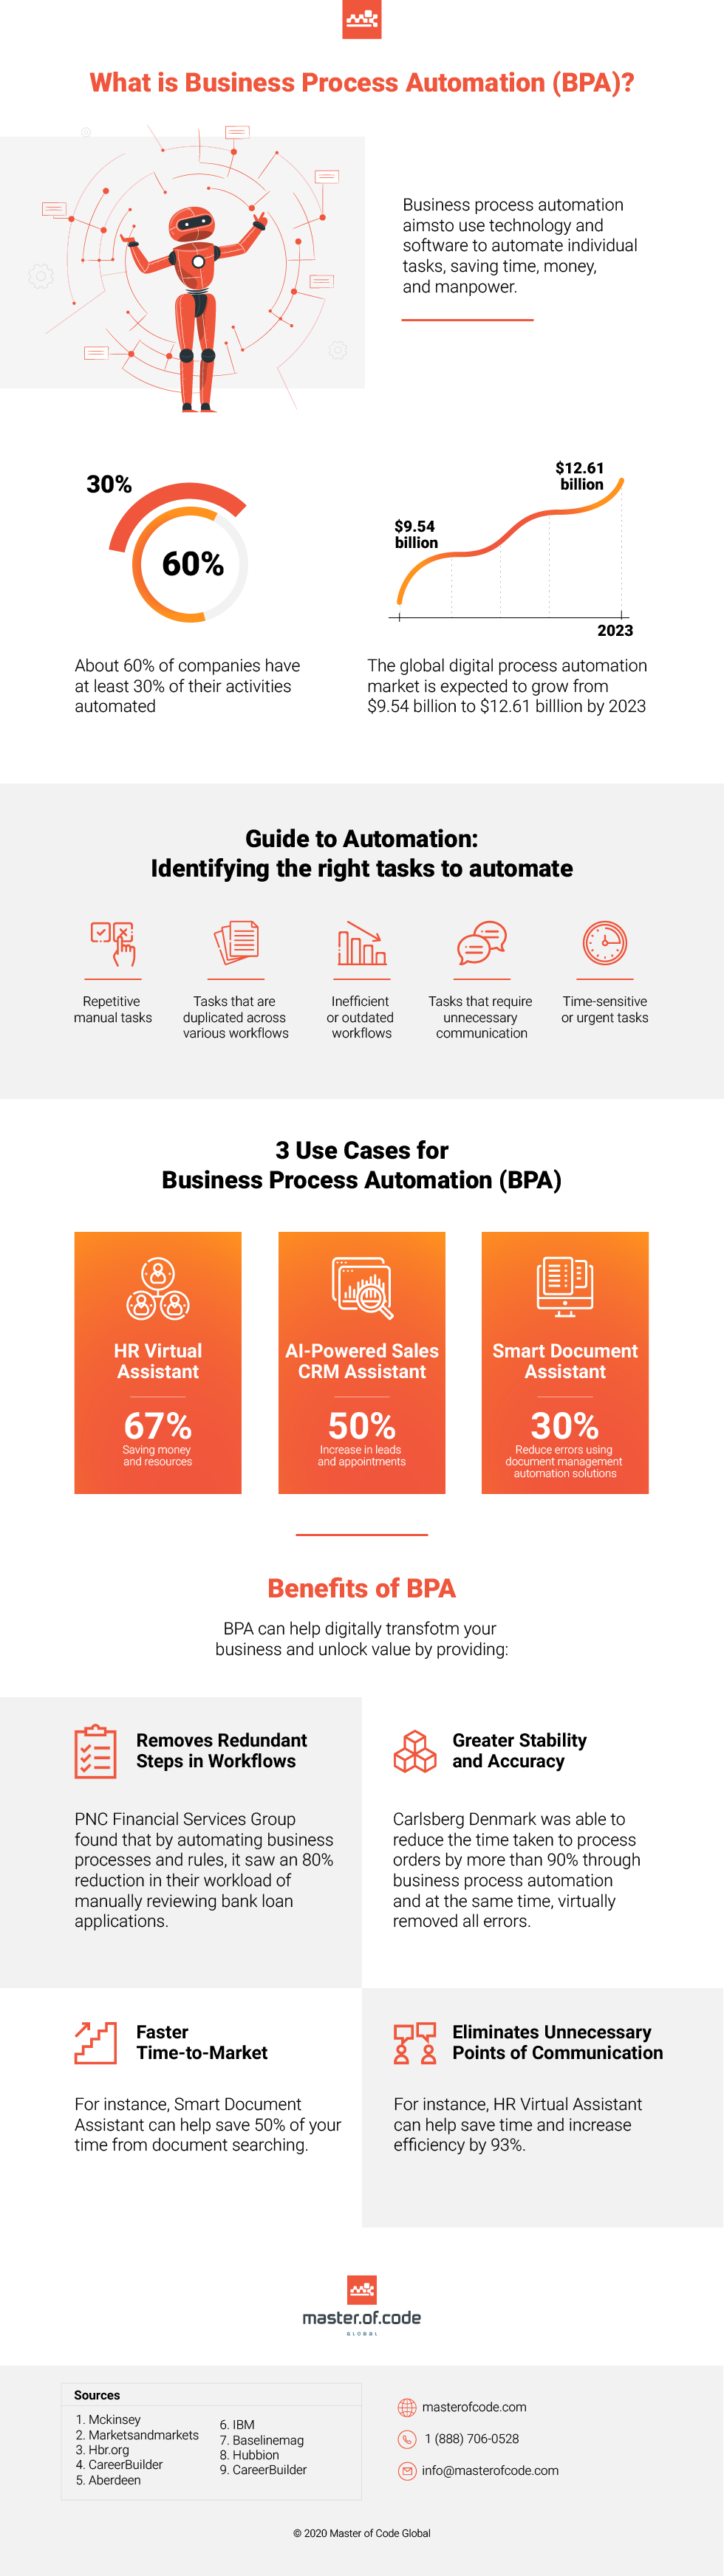 What is Business Process Automation (BPA) #infographic